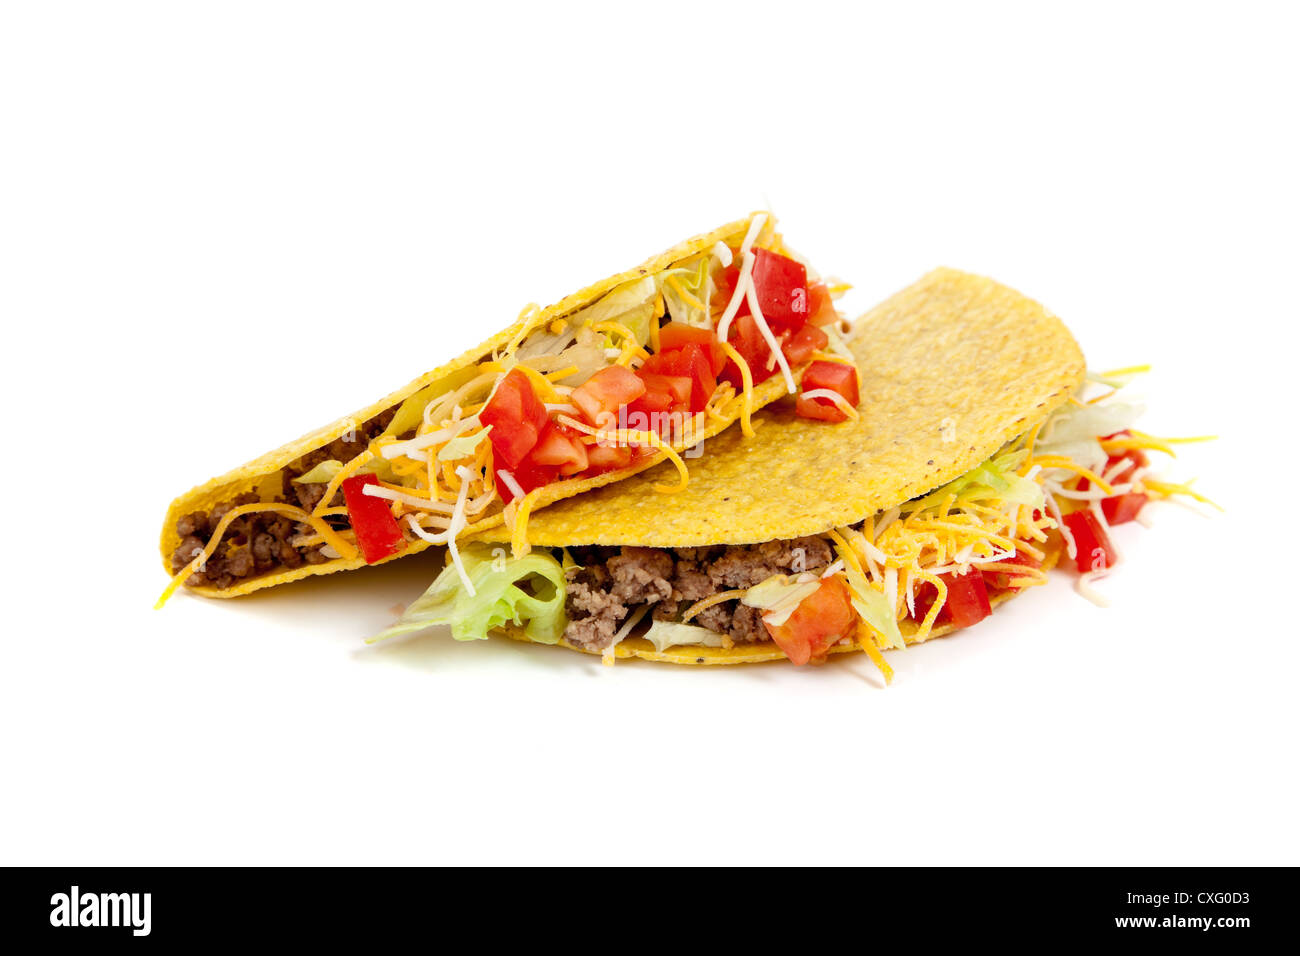 Two tacos on a white background - Stock Image